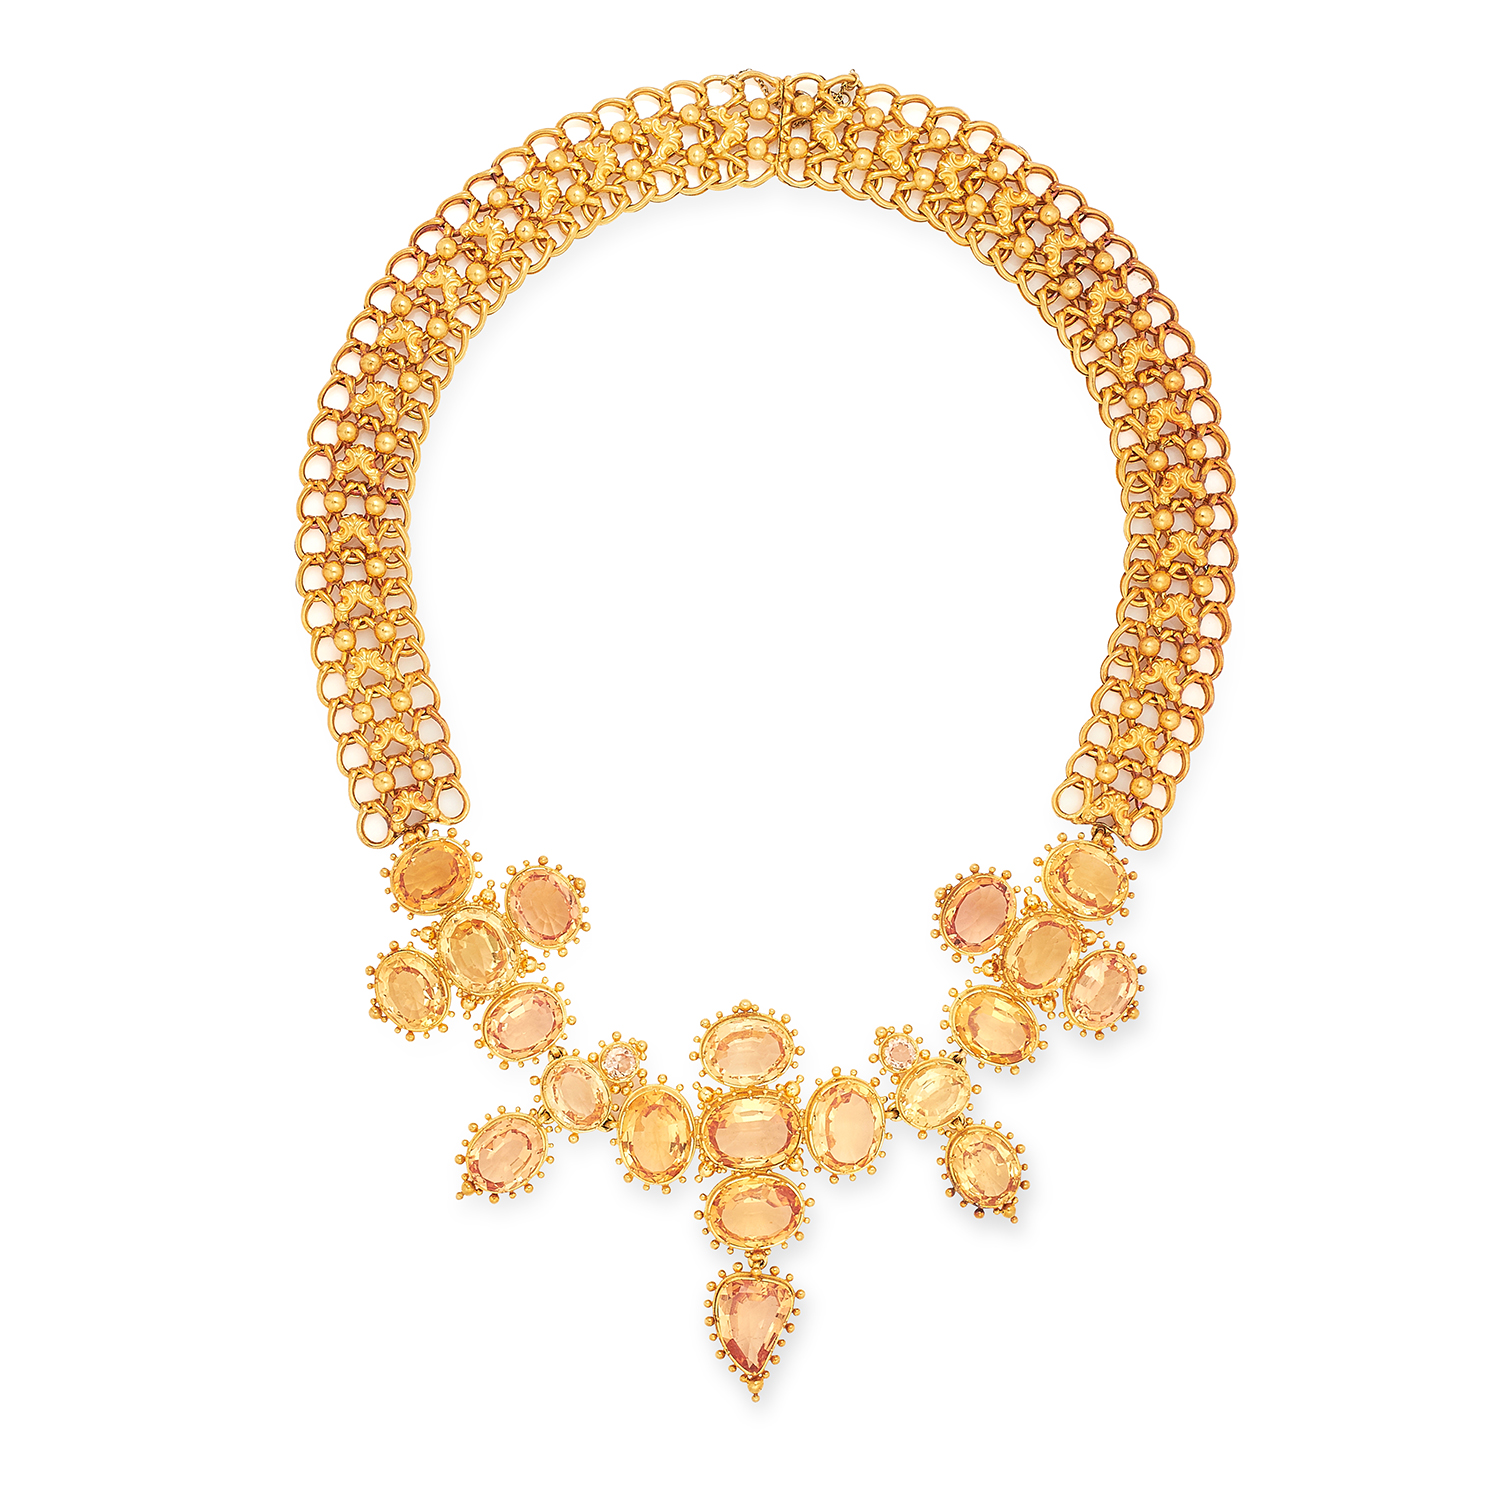 AN ANTIQUE IMPERIAL TOPAZ NECKLACE AND CLIP EARRING SUITE, 19TH CENTURY set with oval, round and